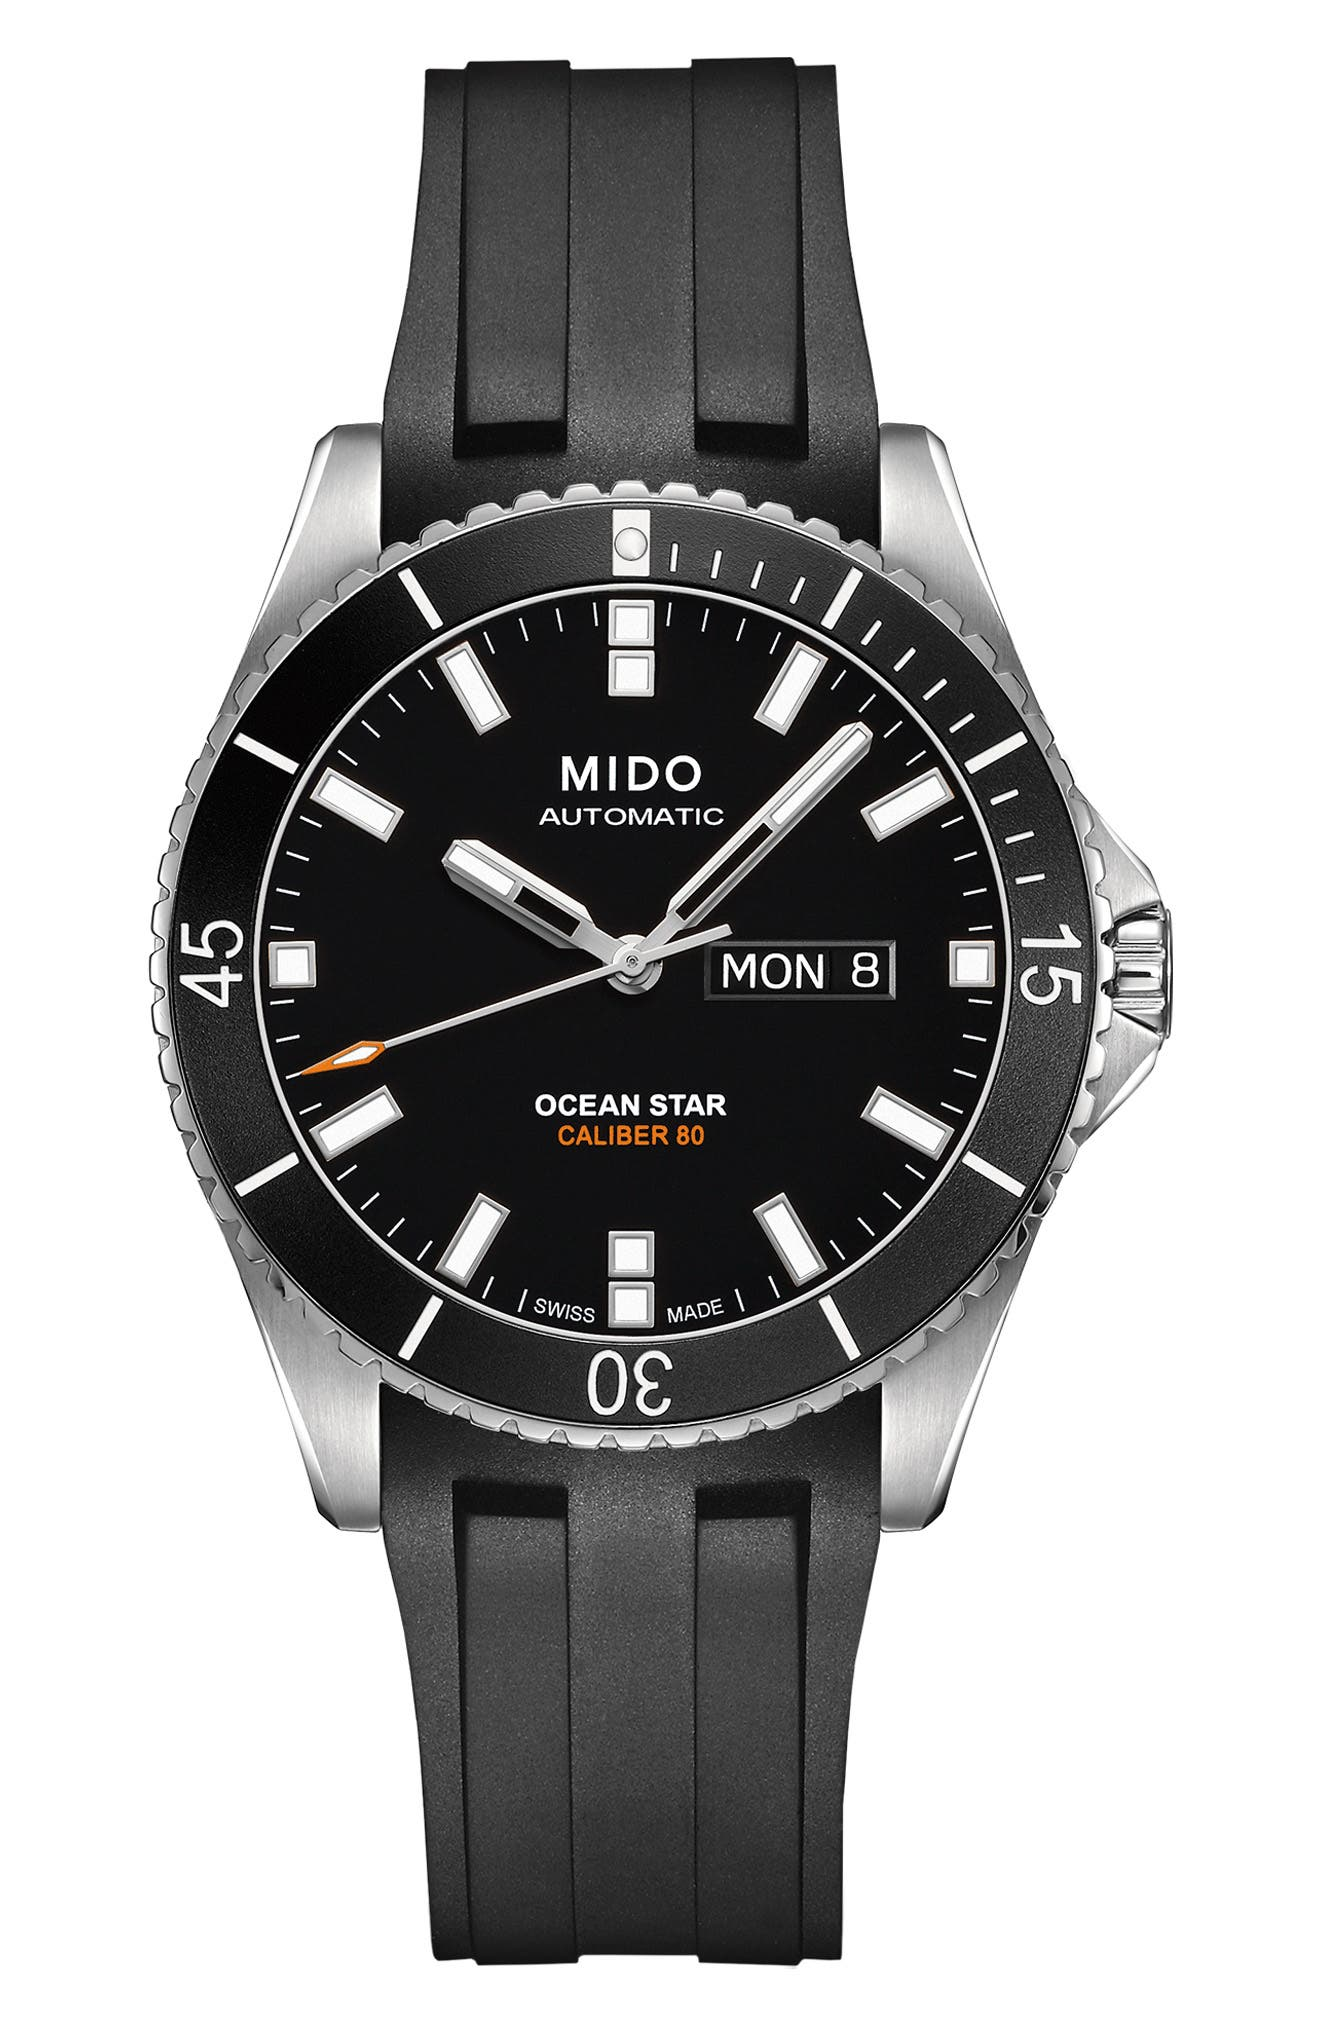 Ocean Star 200 Automatic Rubber Strap Watch